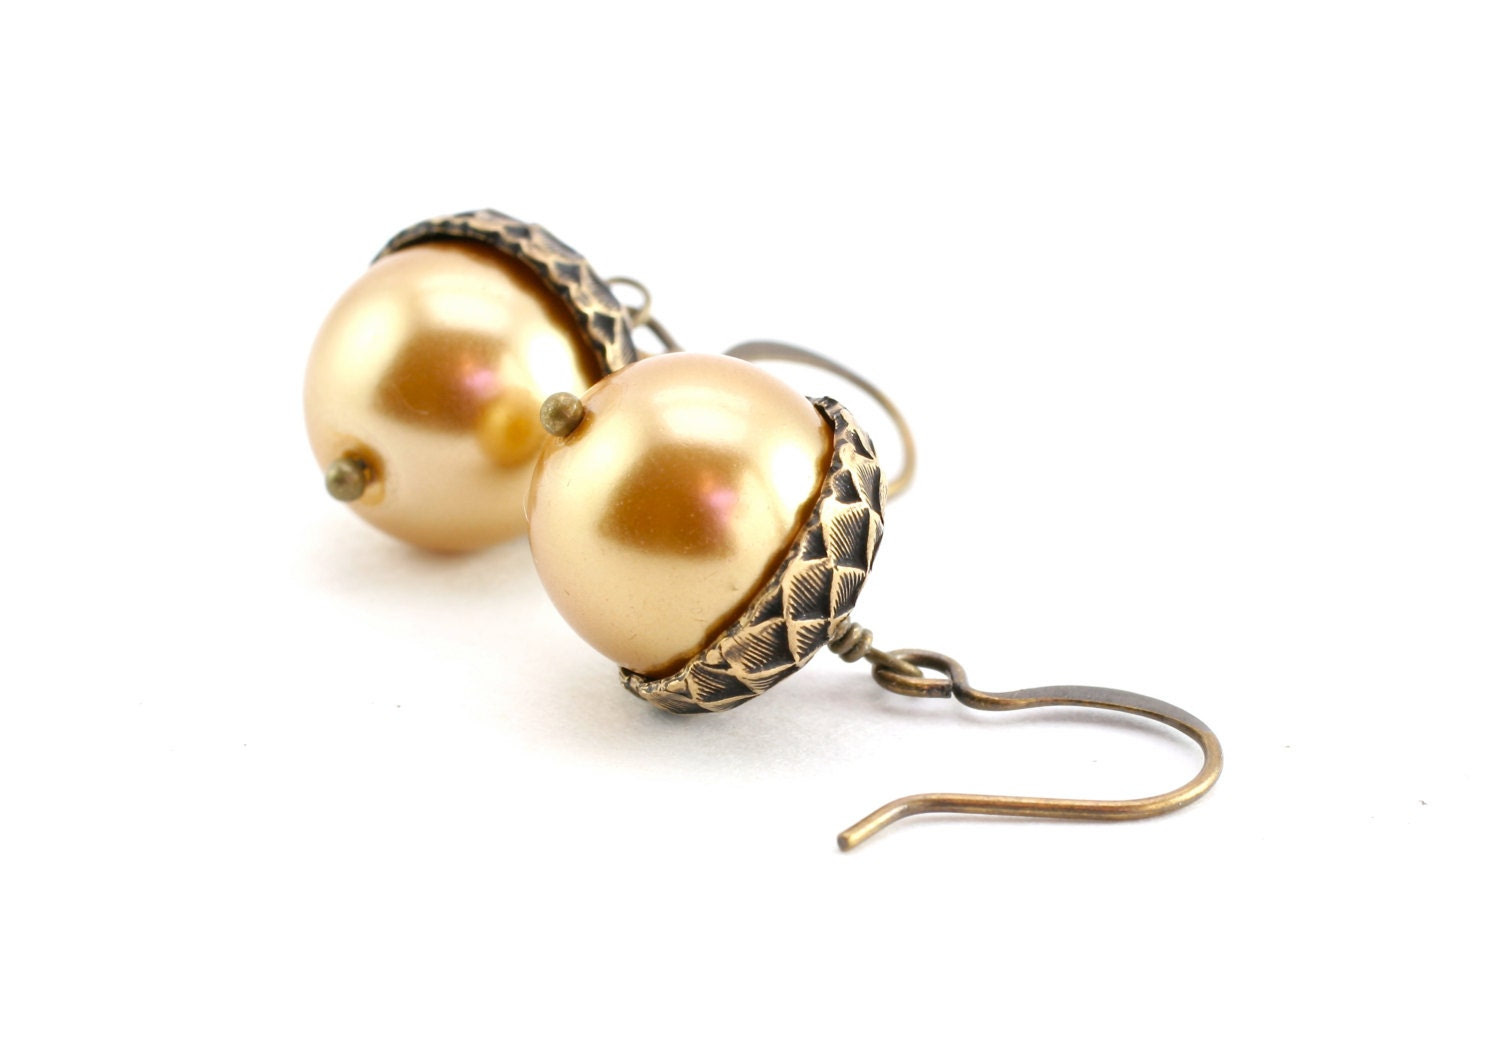 Acorn Earrings, Golden Champagne Pearl Earrings, Wedding Earrings